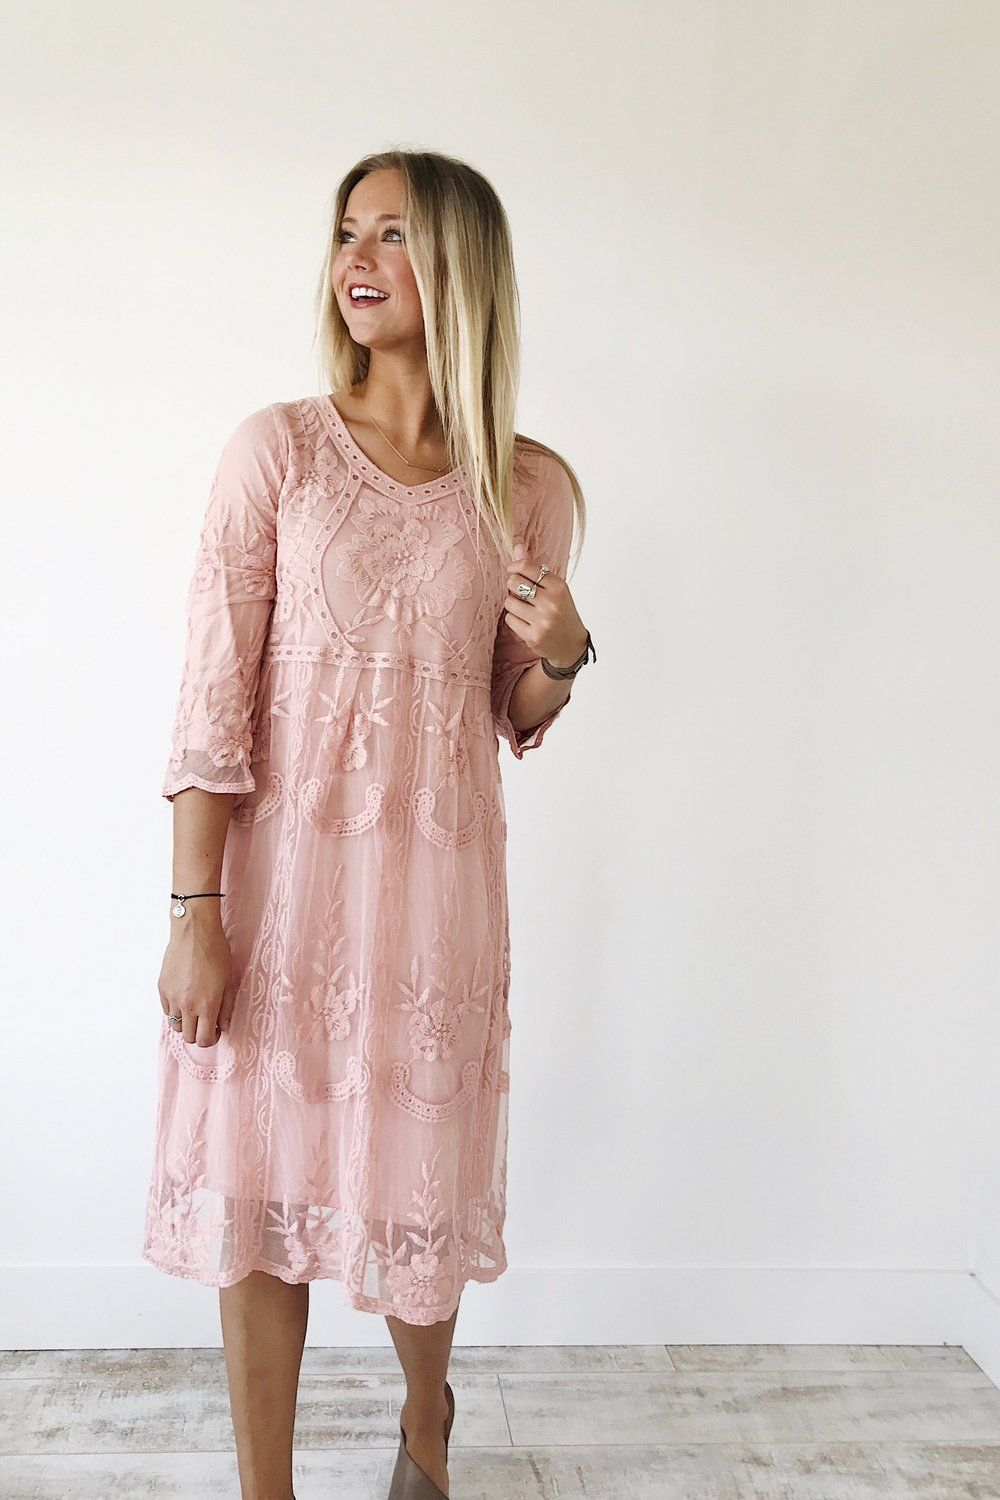 Nora Lace Dress in Mauve